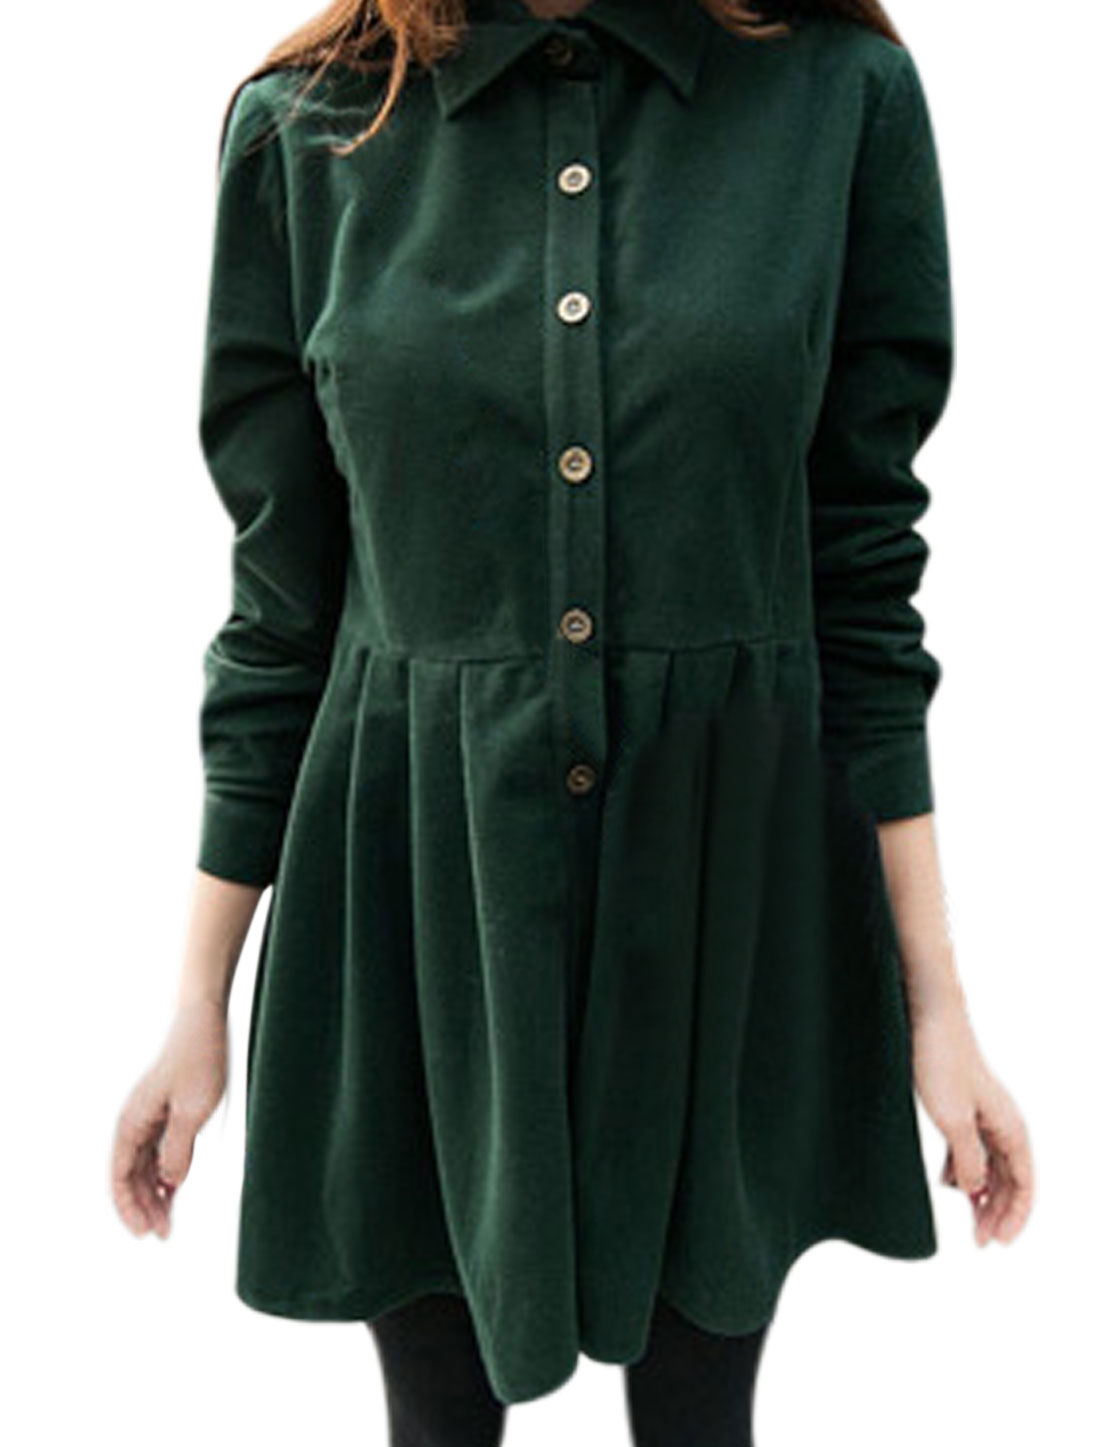 Ladies Button Closed Front Pleated Design Dusty Green Shirt Dress S